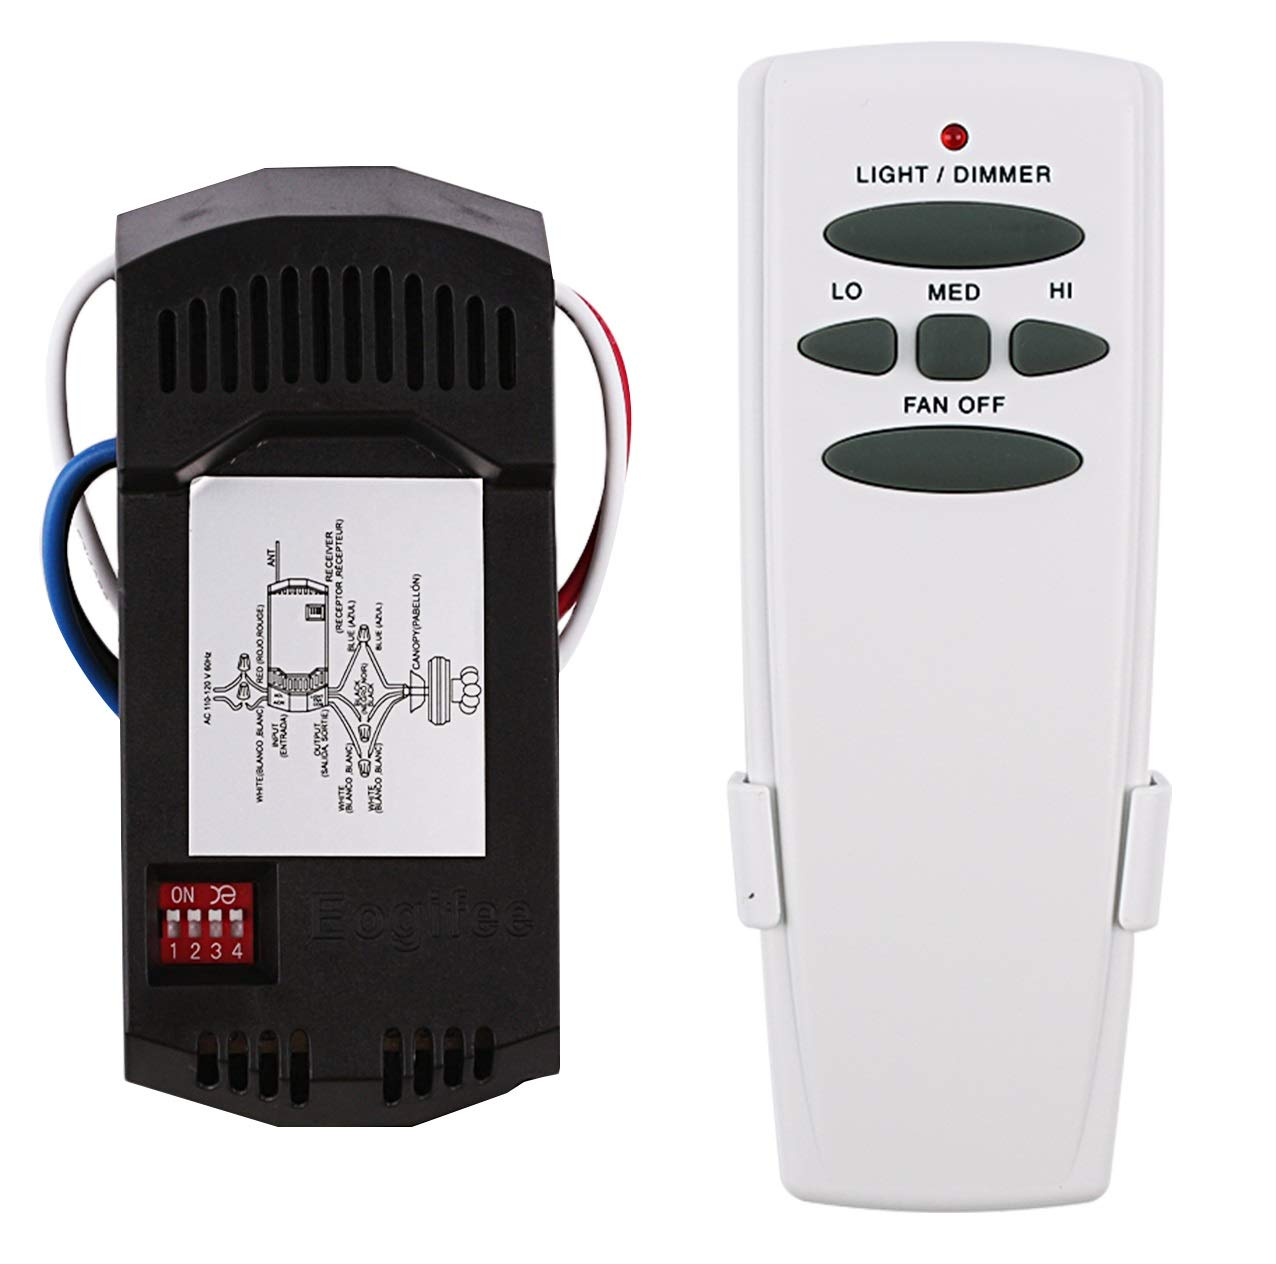 Eogifee Universal Ceiling Fan Remote Control And Receiver Kit Replacement Of Ebay